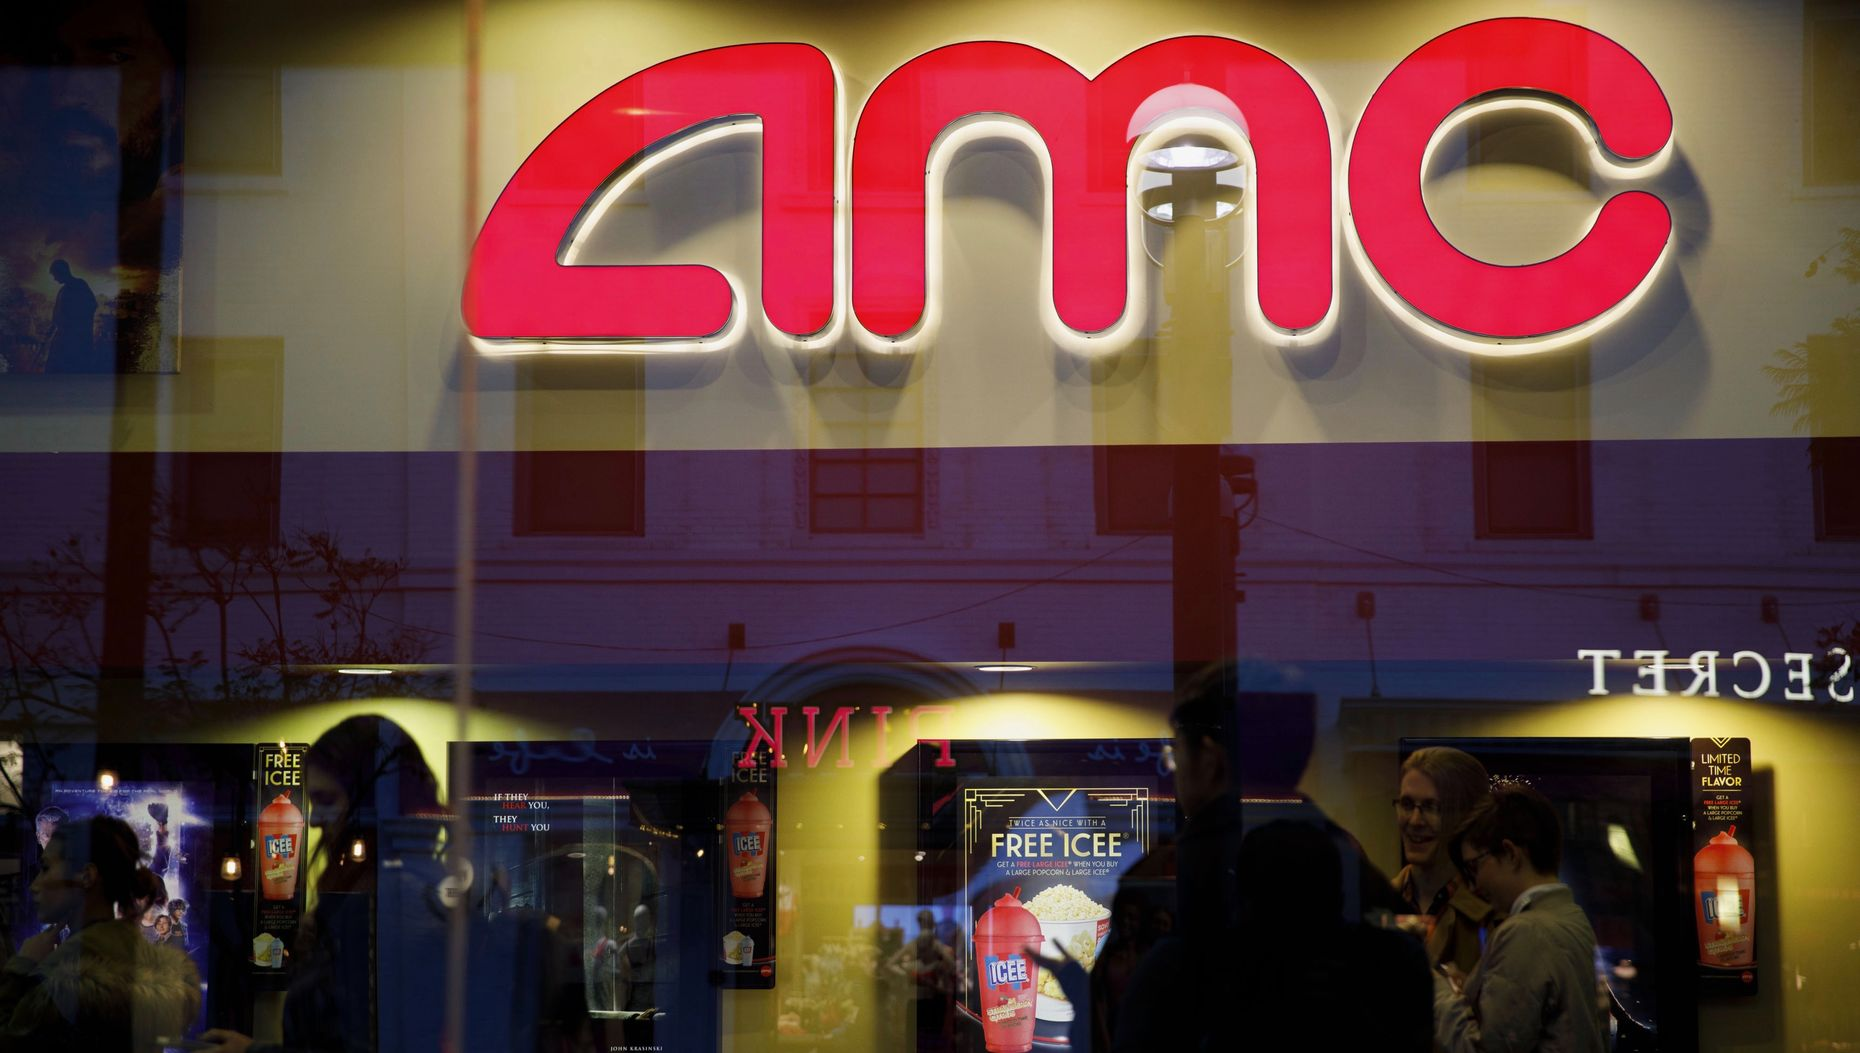 An AMC theater in Santa Monica, California. Photo by Bloomberg